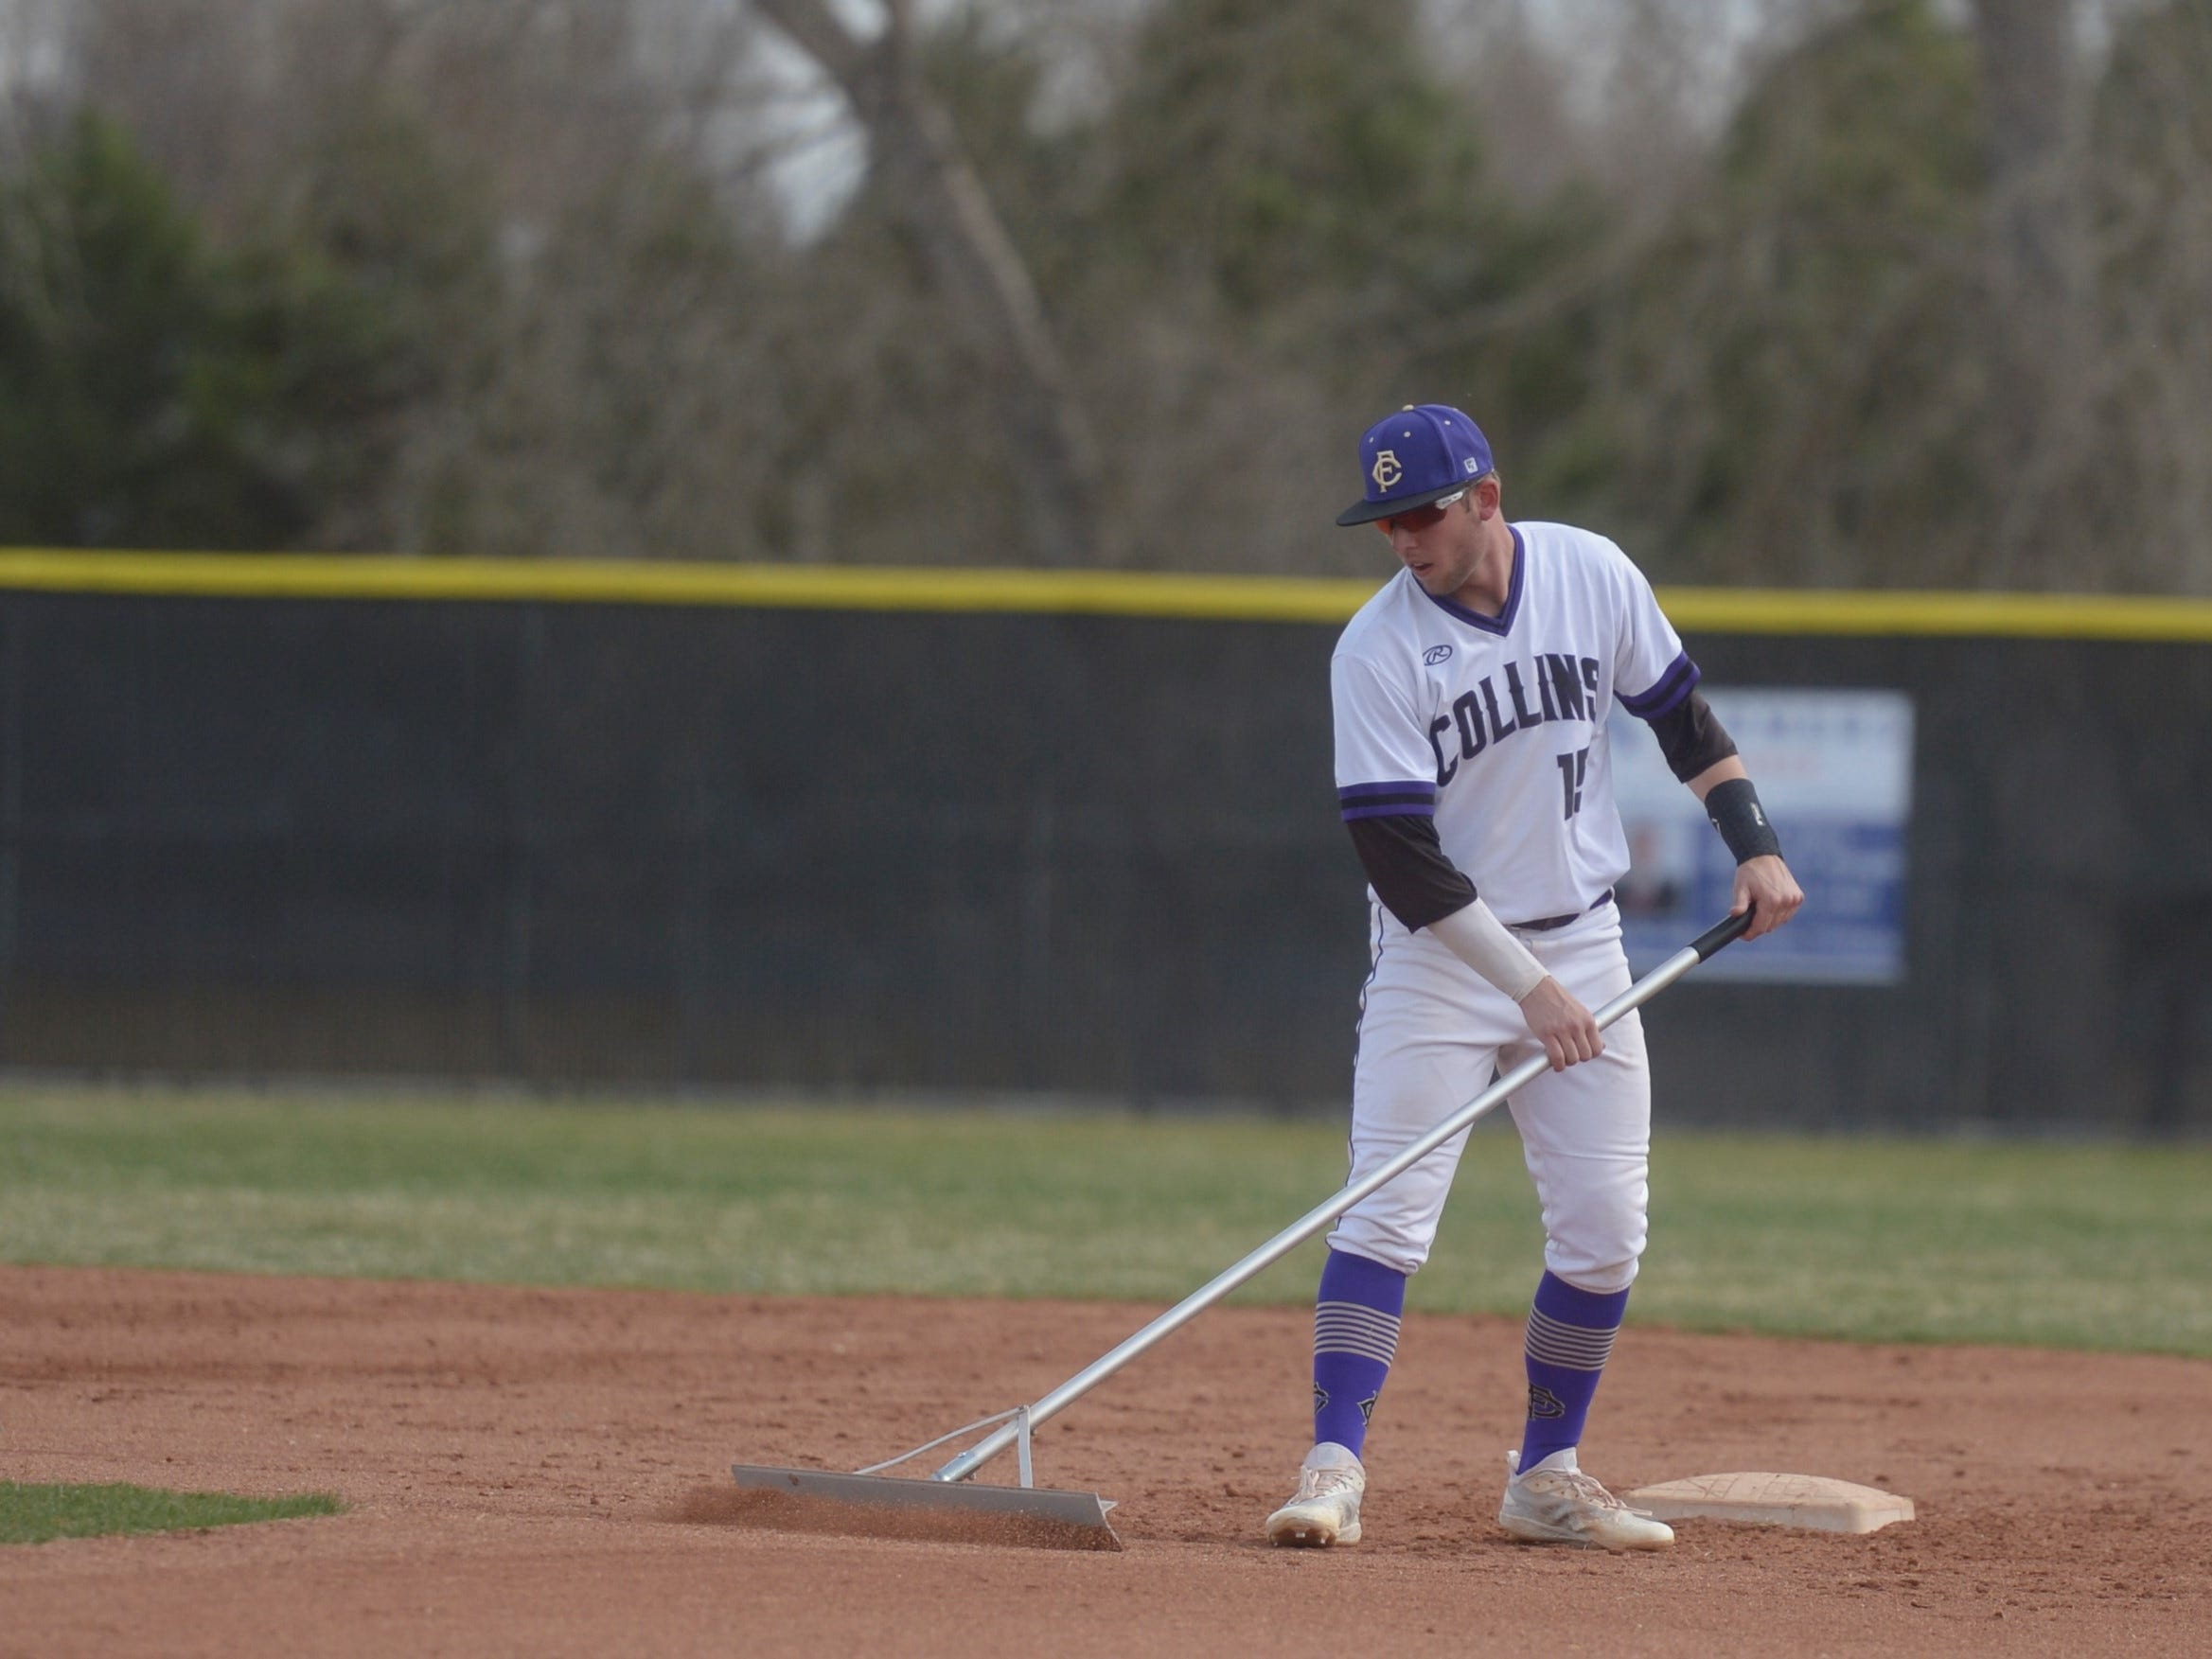 Fort Collins High School baseball player Caleb Brlecic rakes the dirt before a game against Denver South on Monday, April 8, 2019. The Lambkins won 13-3 to move to 10-0 on the season.